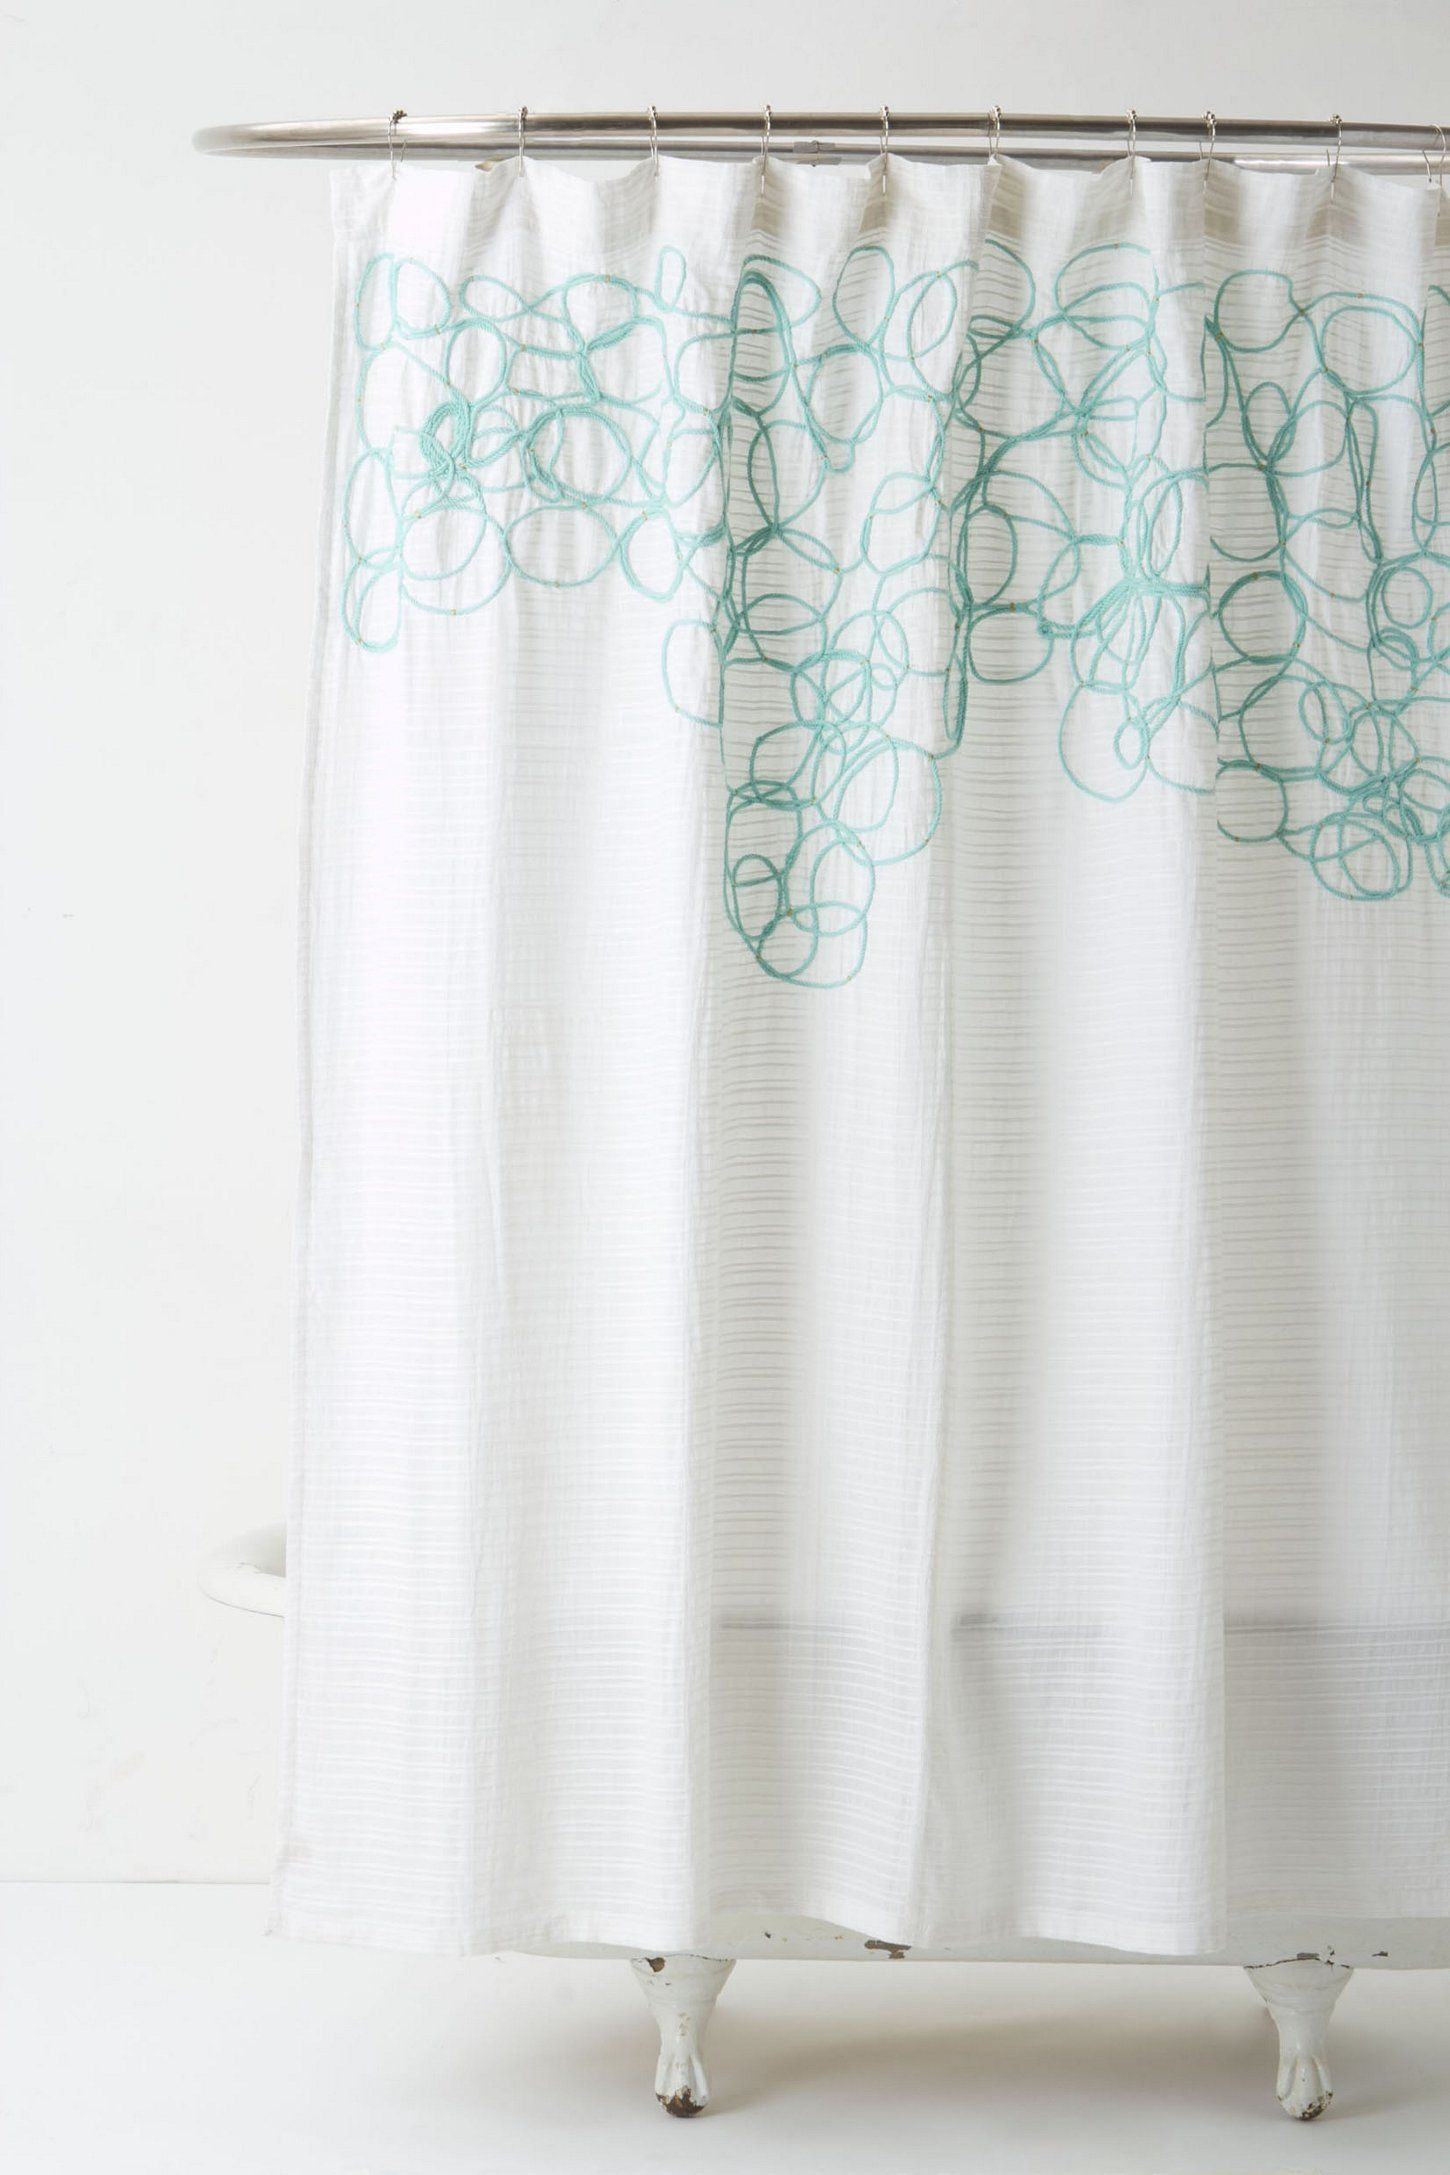 Looped Knotted Shower Curtain Anthropologie Com